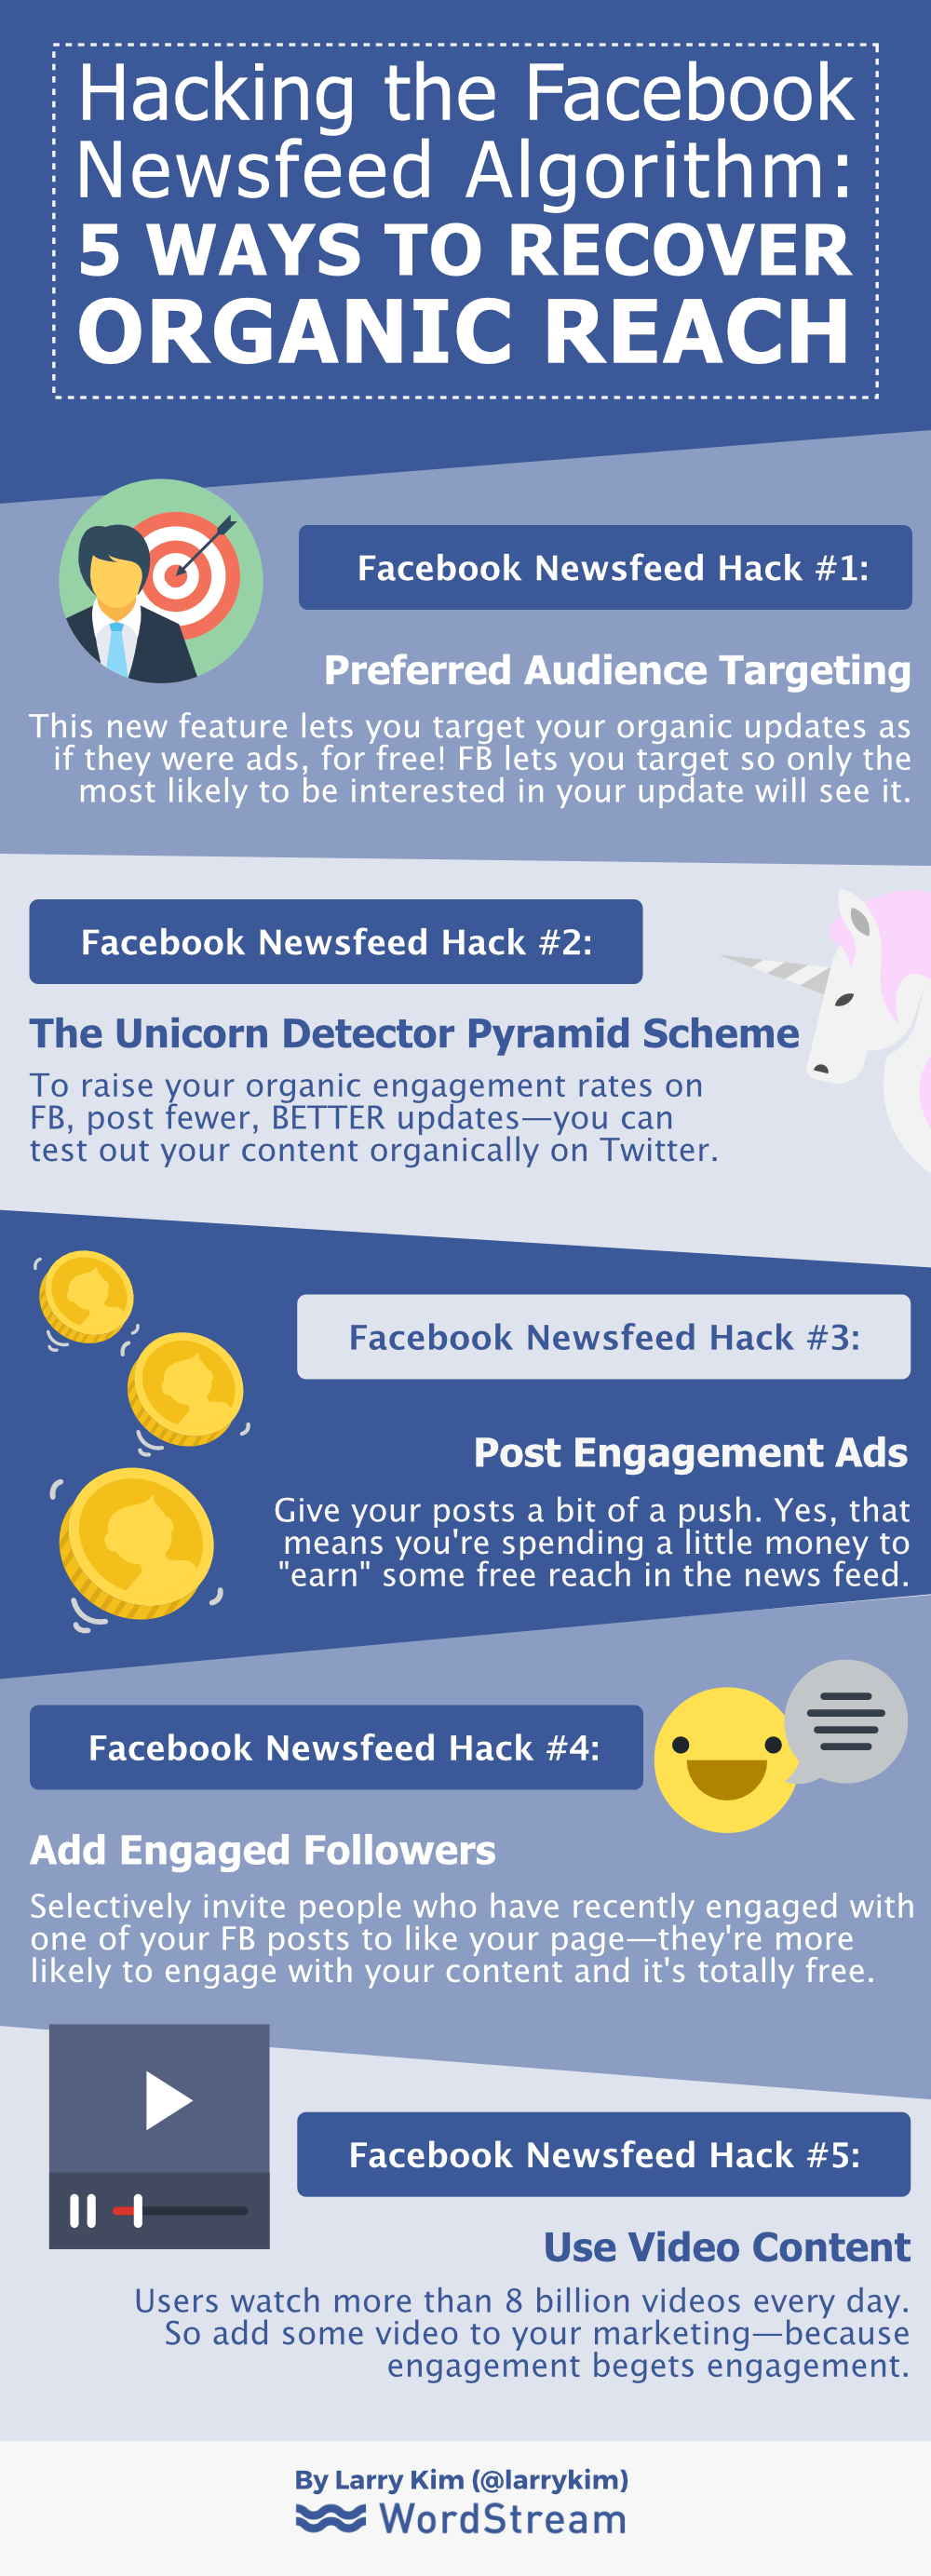 Hacking the Facebook Newsfeed Algorithm: 5 Ways to Recover